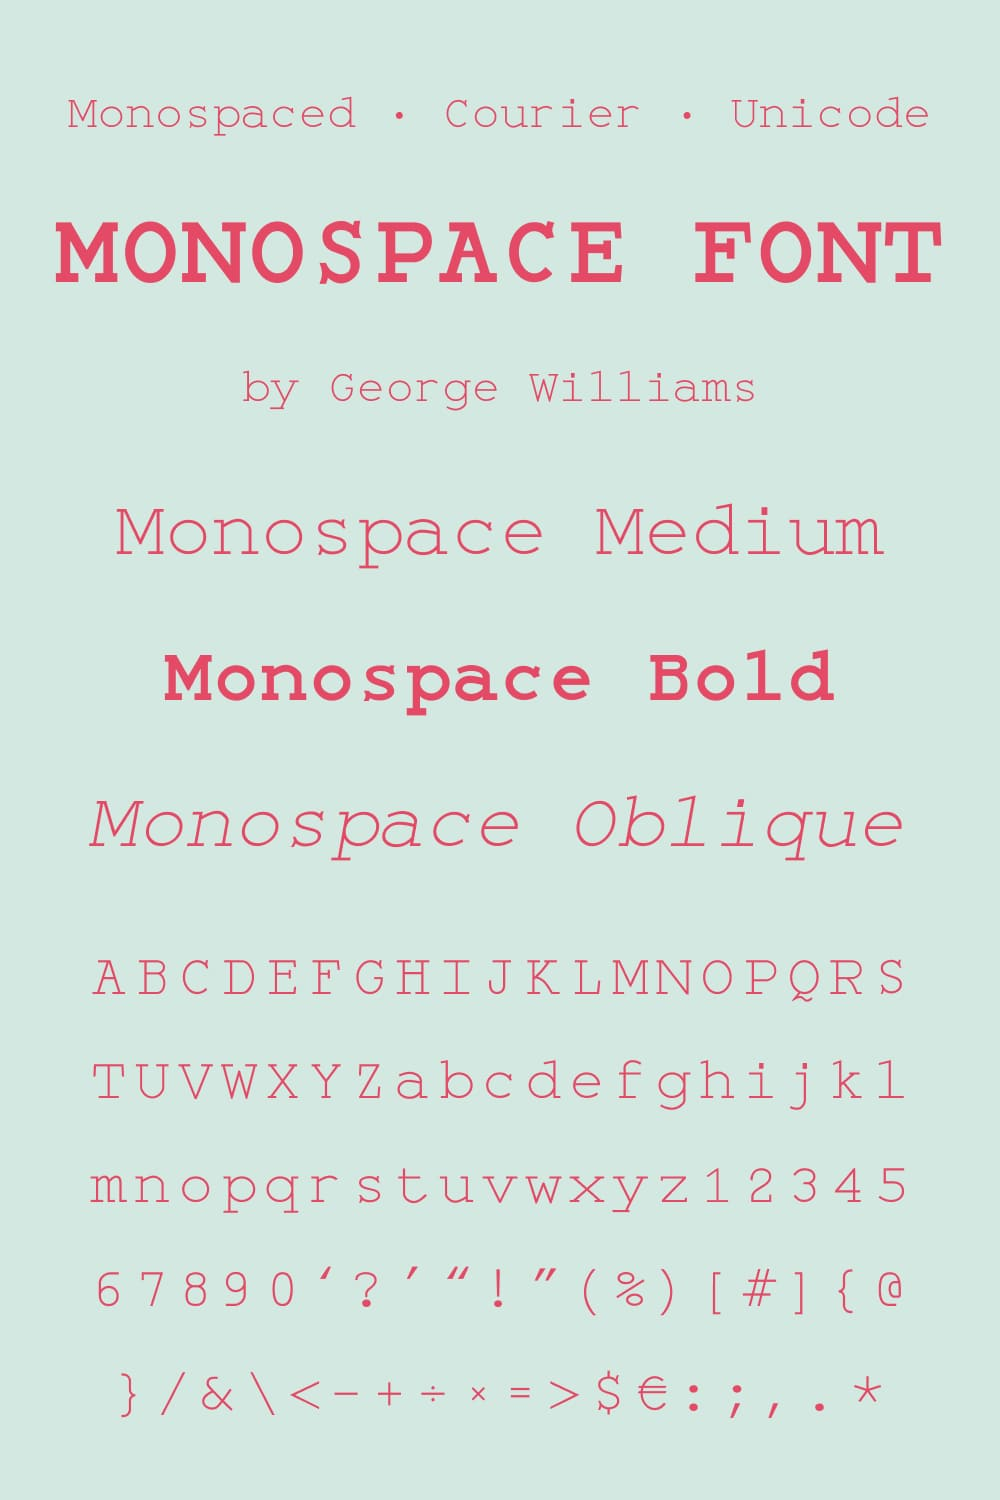 Creative typeface with multiple implementations.